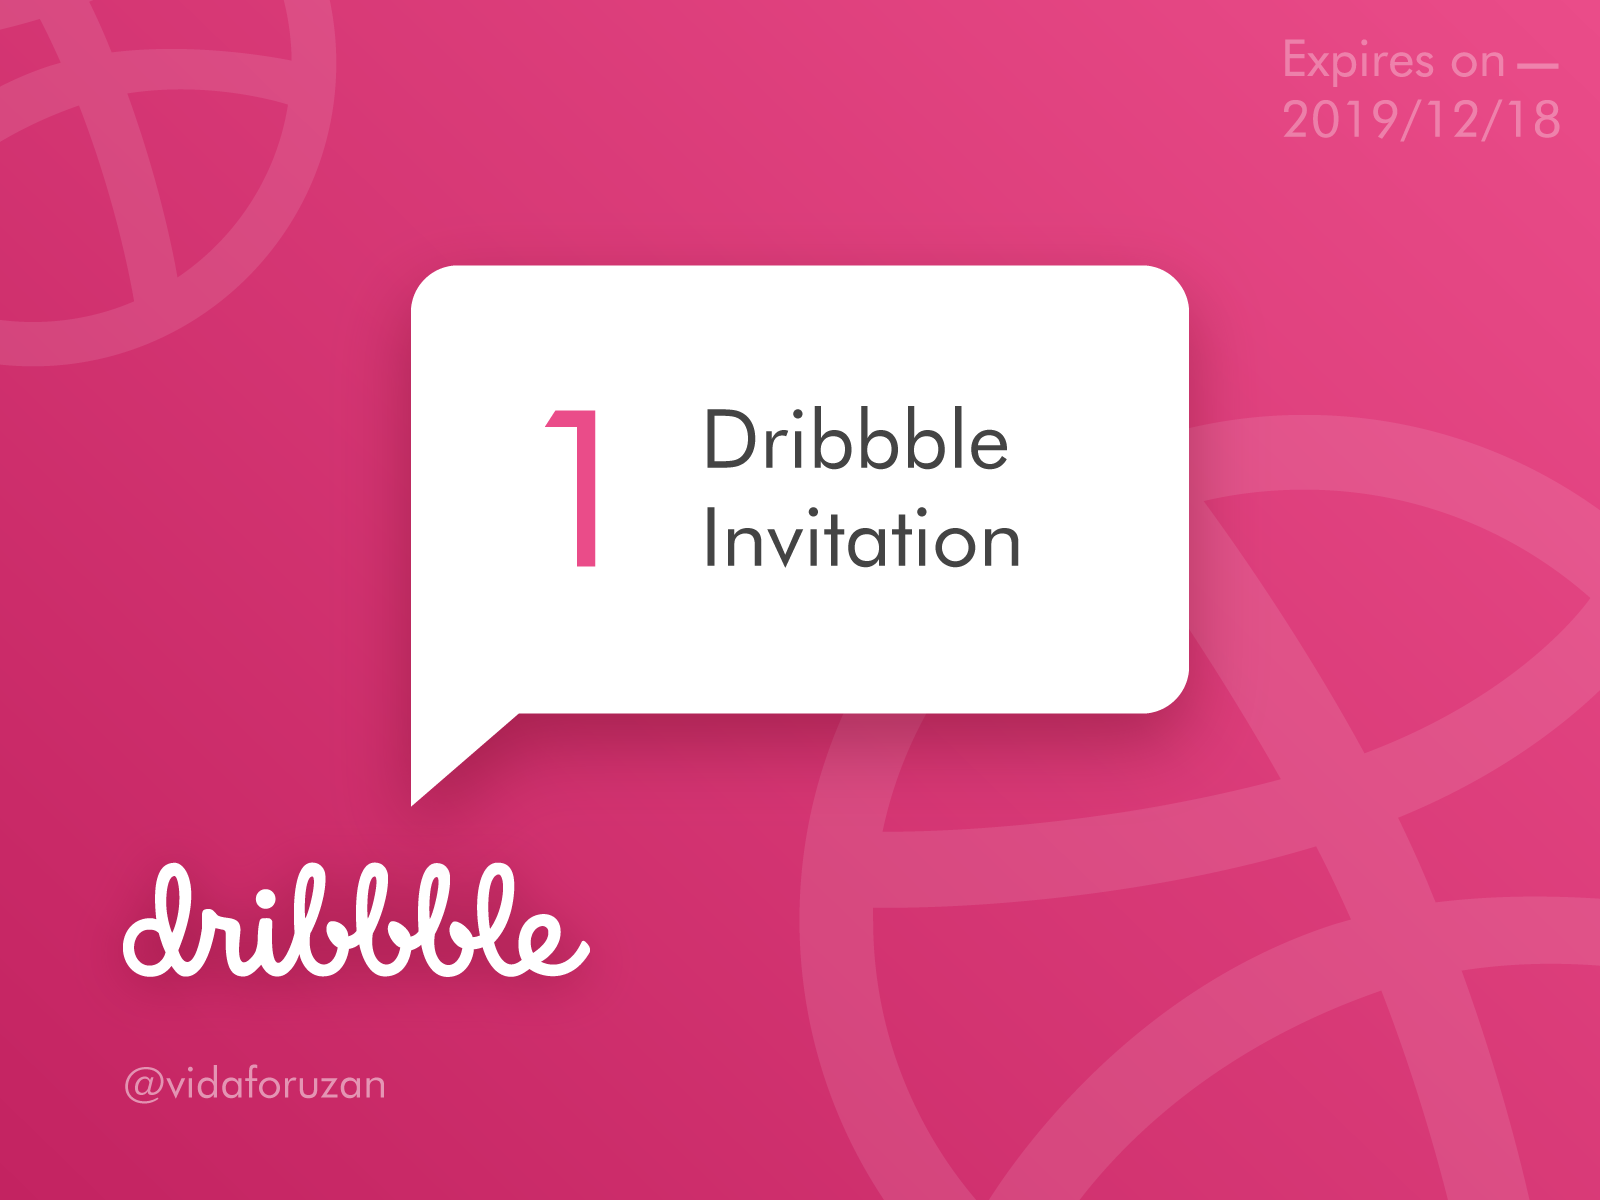 Flirt Flyer Designs, Themes, Templates And Downloadable Graphic Elements On Dribbble